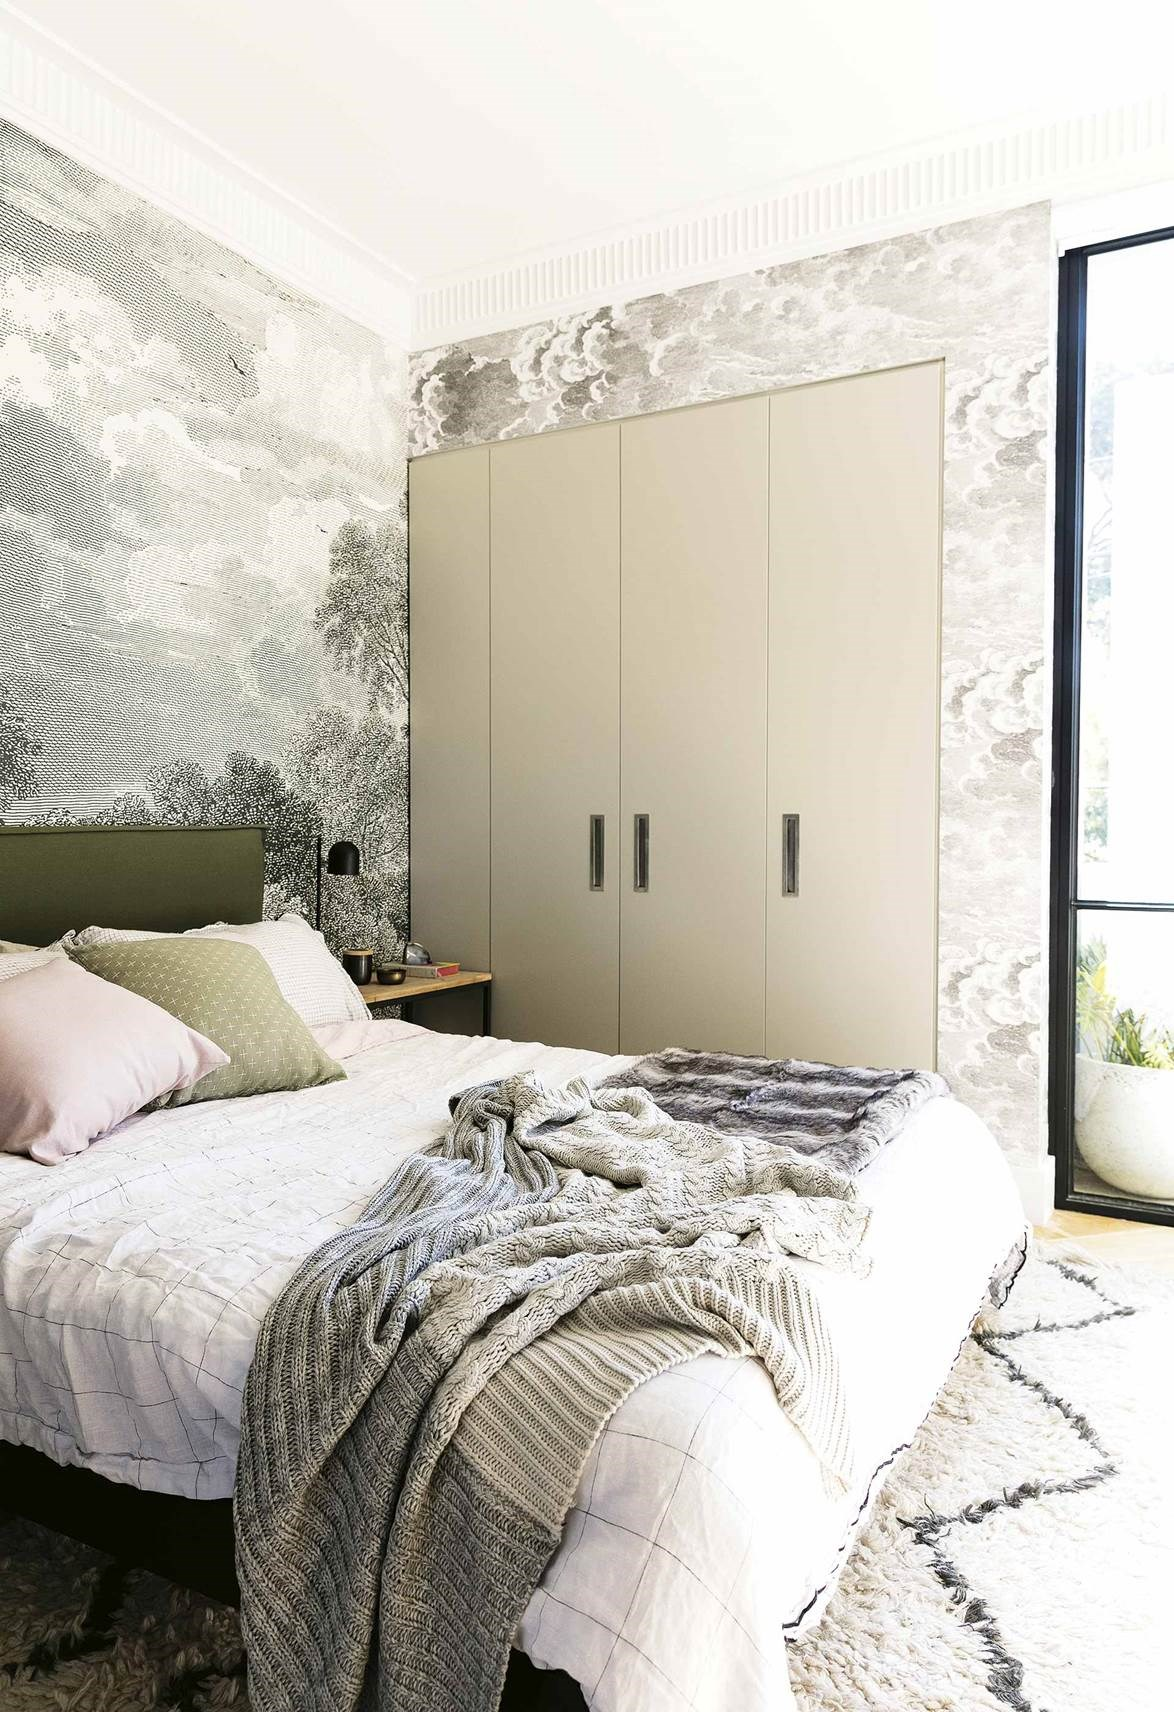 Neutral and soft pastel tones create a soothing ambience in this dreamy bedroom.